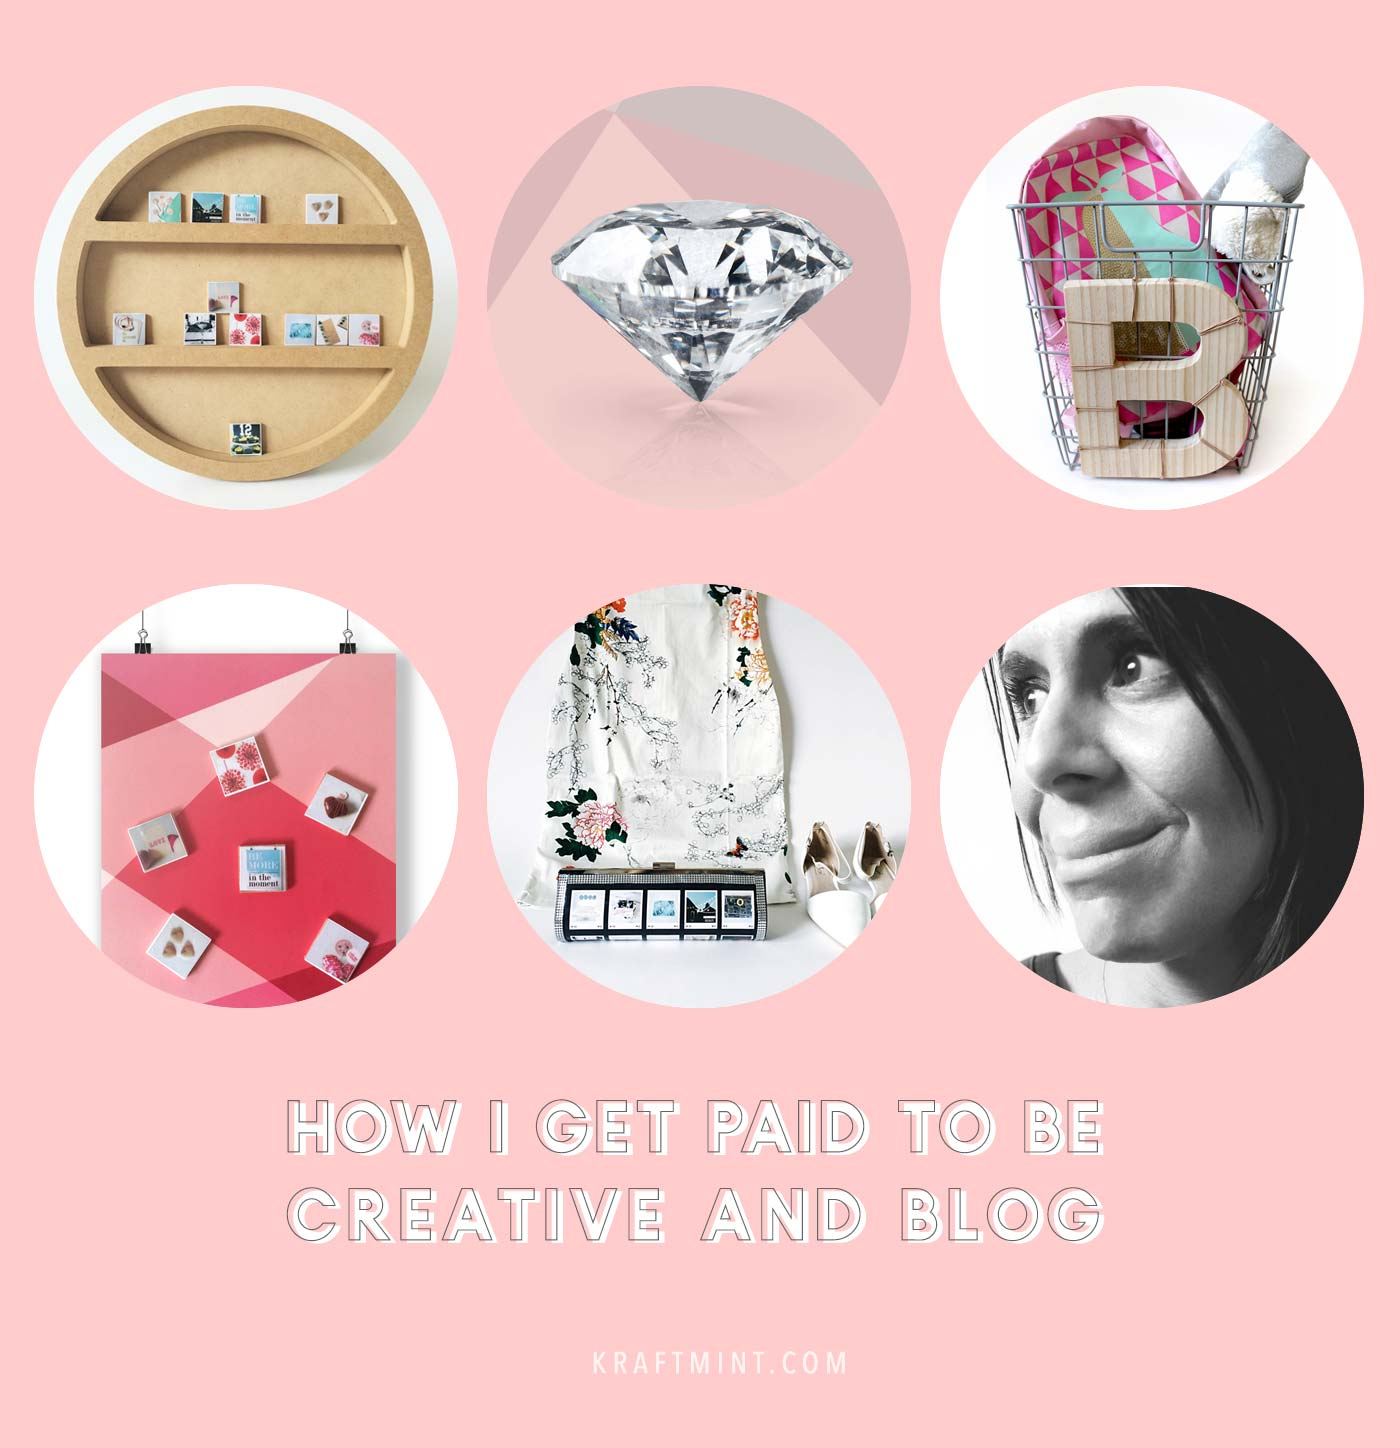 How I get paid to be creative and blog